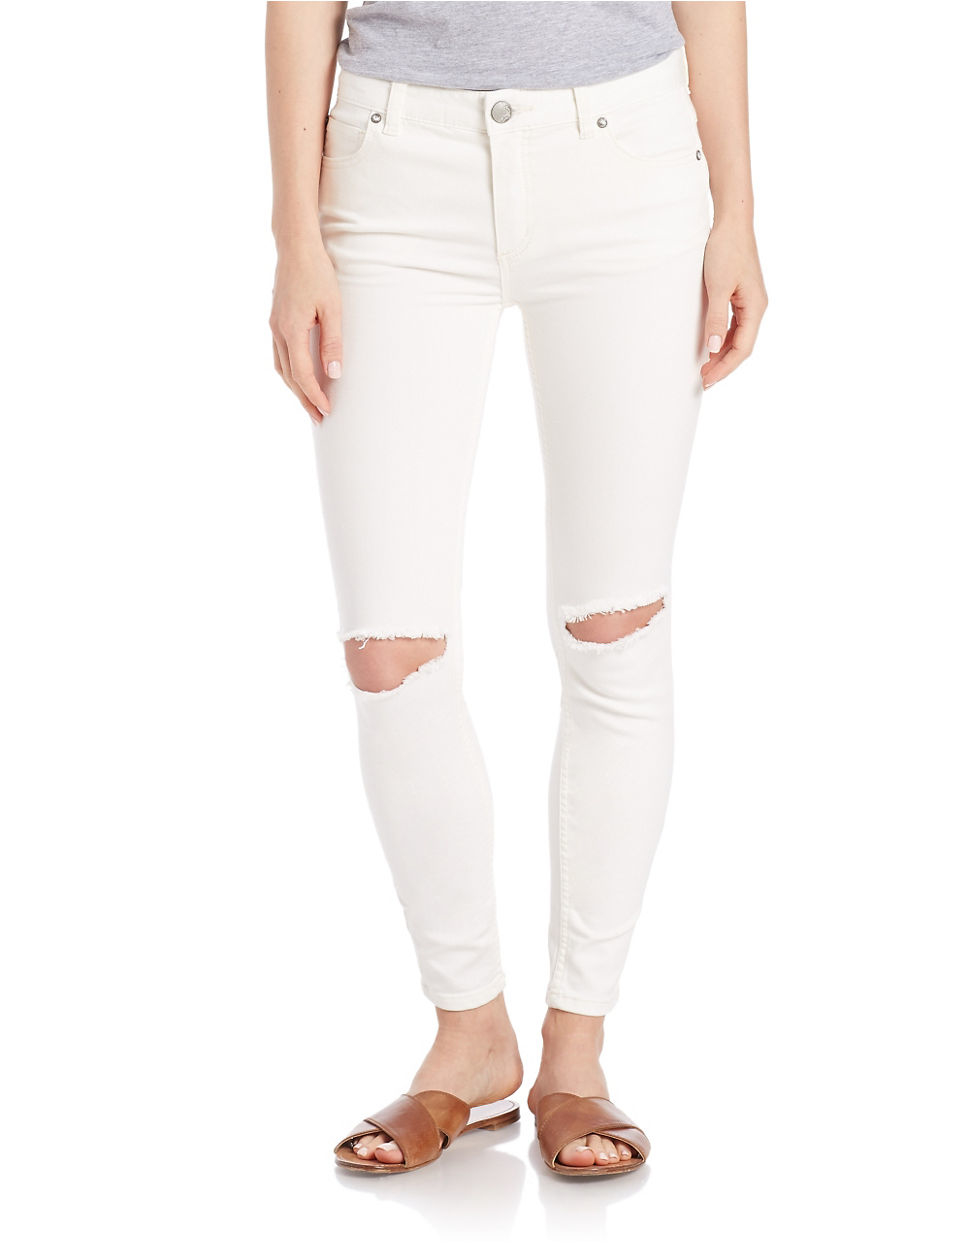 Find great deals on eBay for white distressed skinny jeans. Shop with confidence.